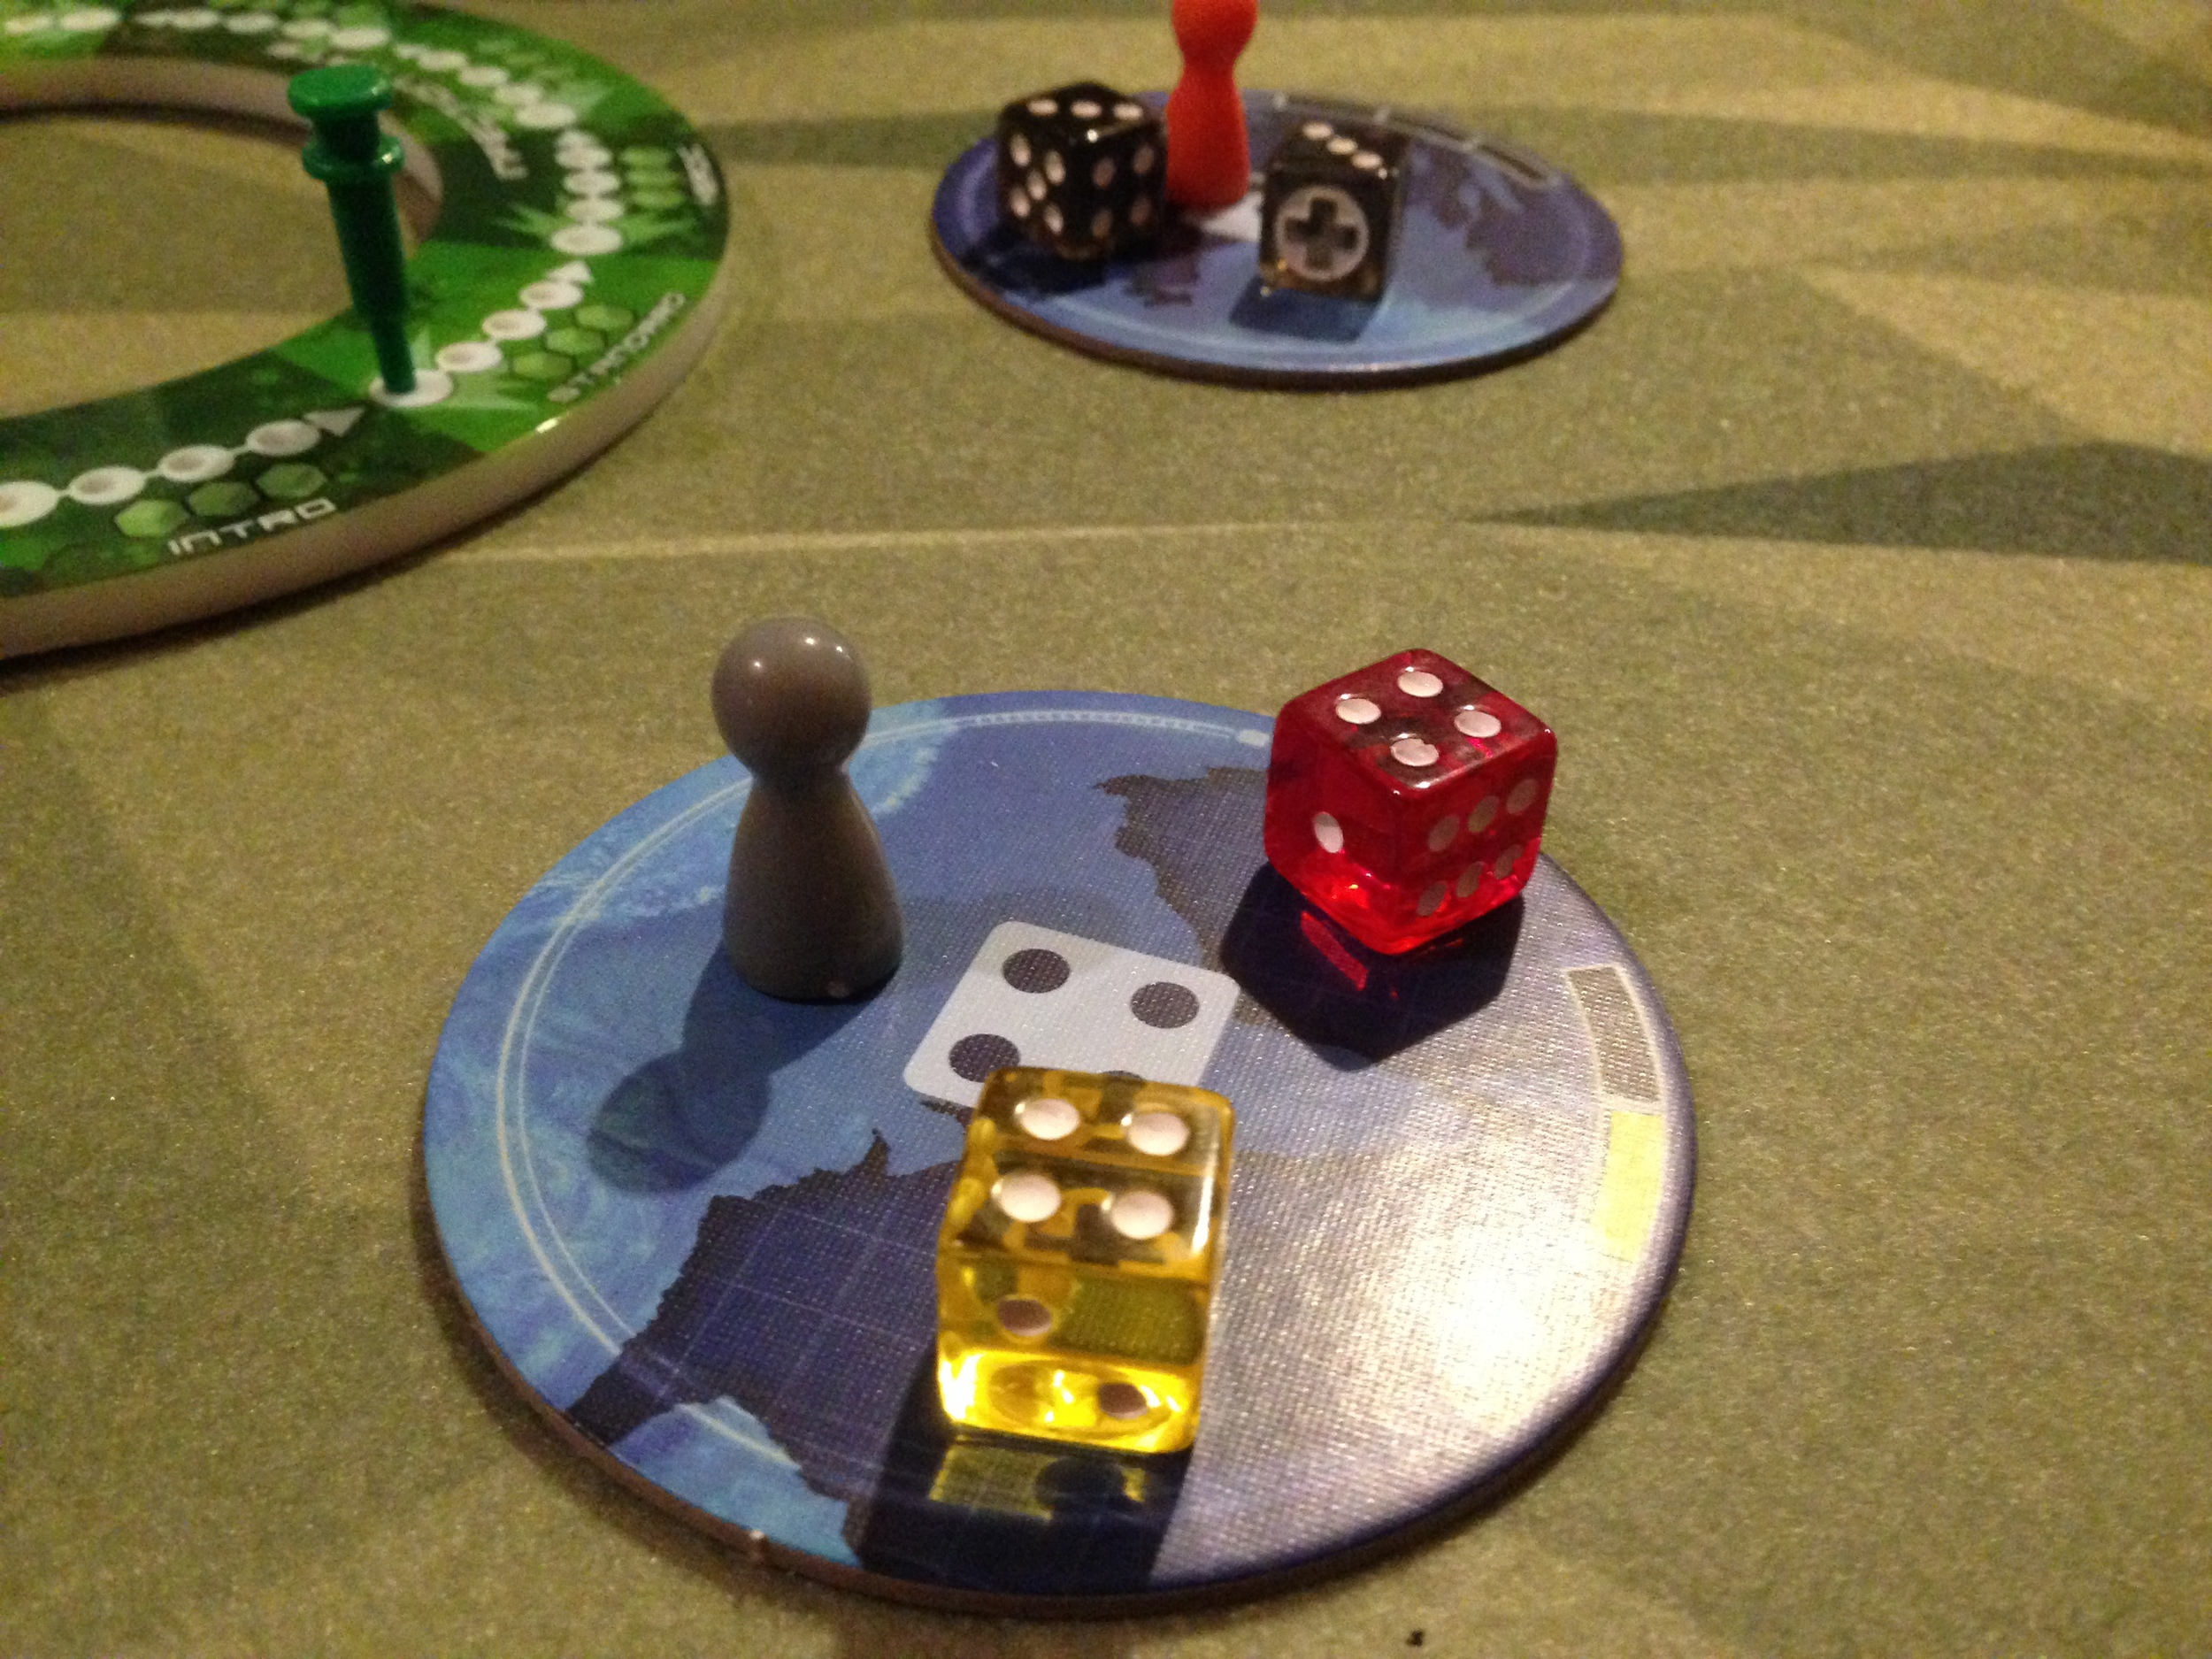 Regions, with a player pawn and some Infection dice.